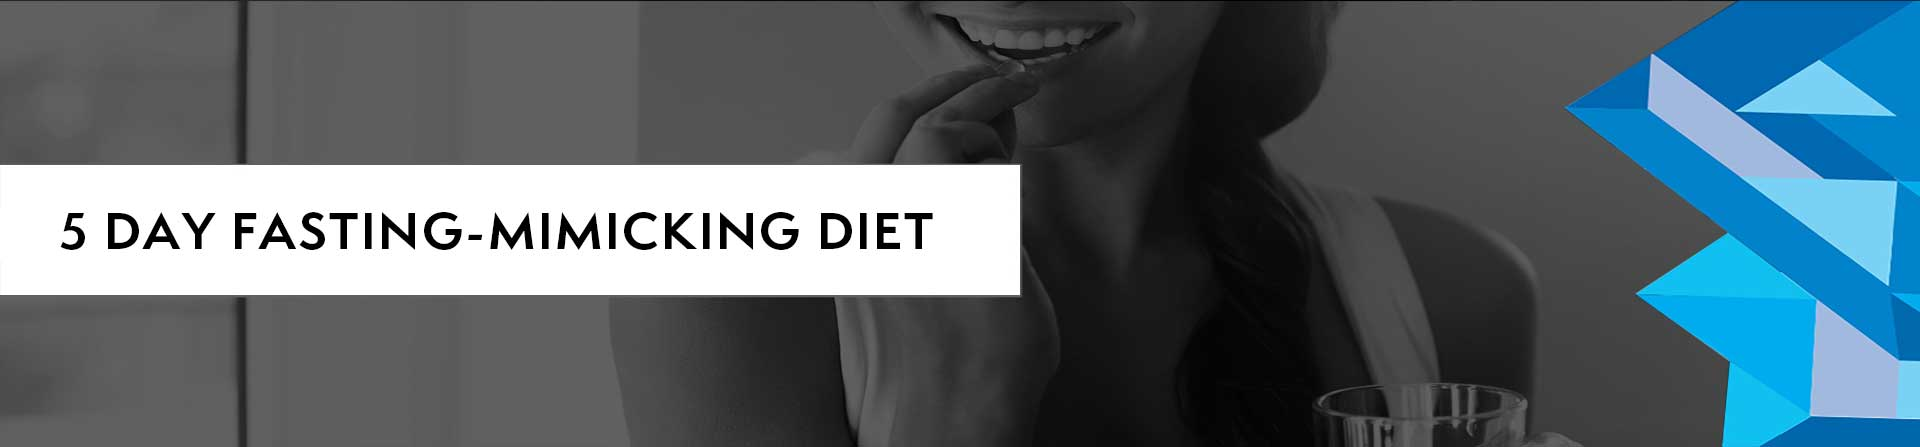 what is an example of fasting mimicking diet